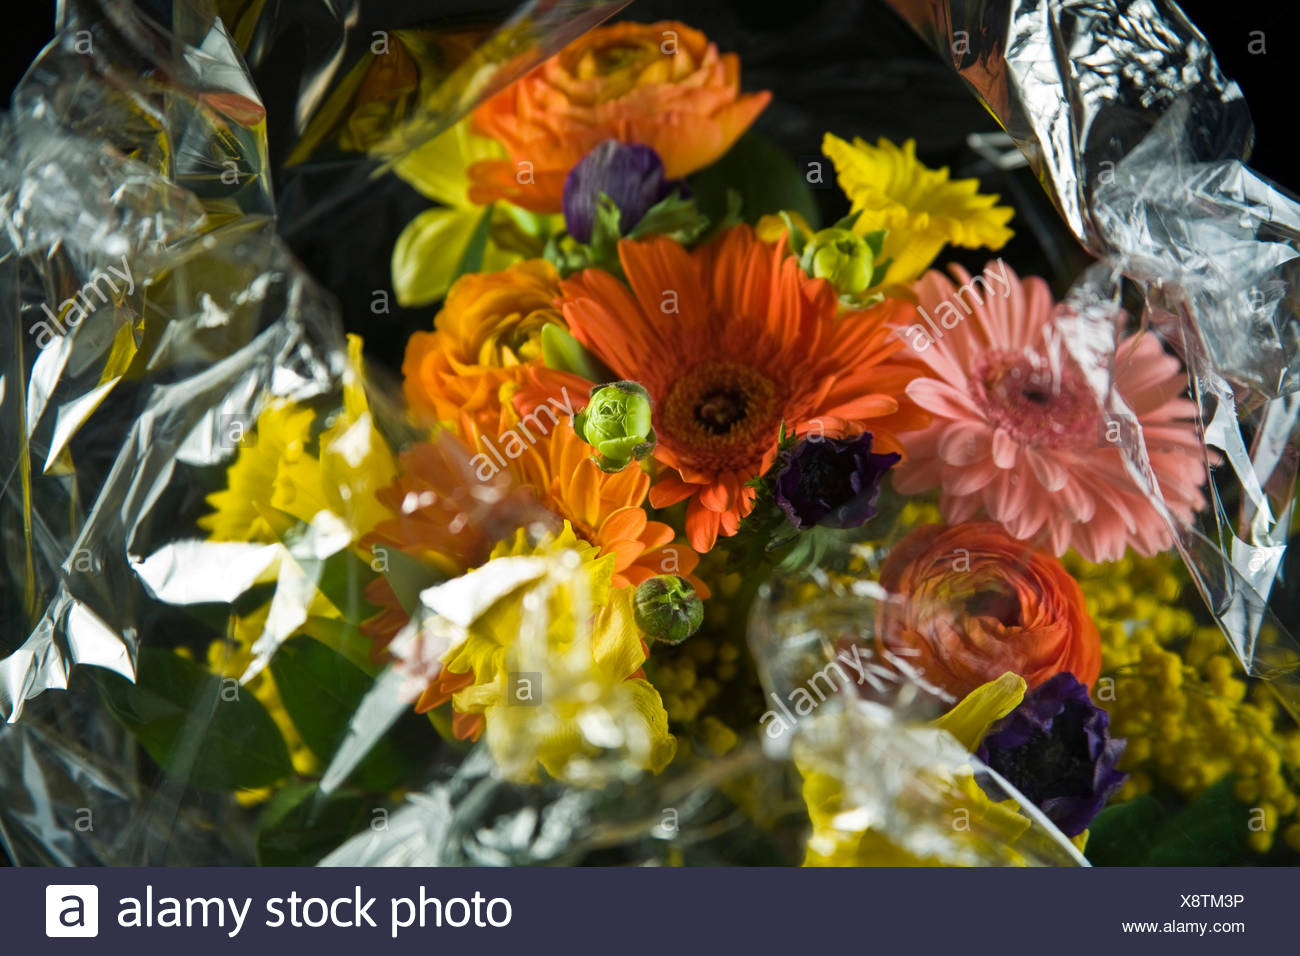 Bouquet Of Flowers Wrapped In Cellophane Stock Photo 280825770 Alamy